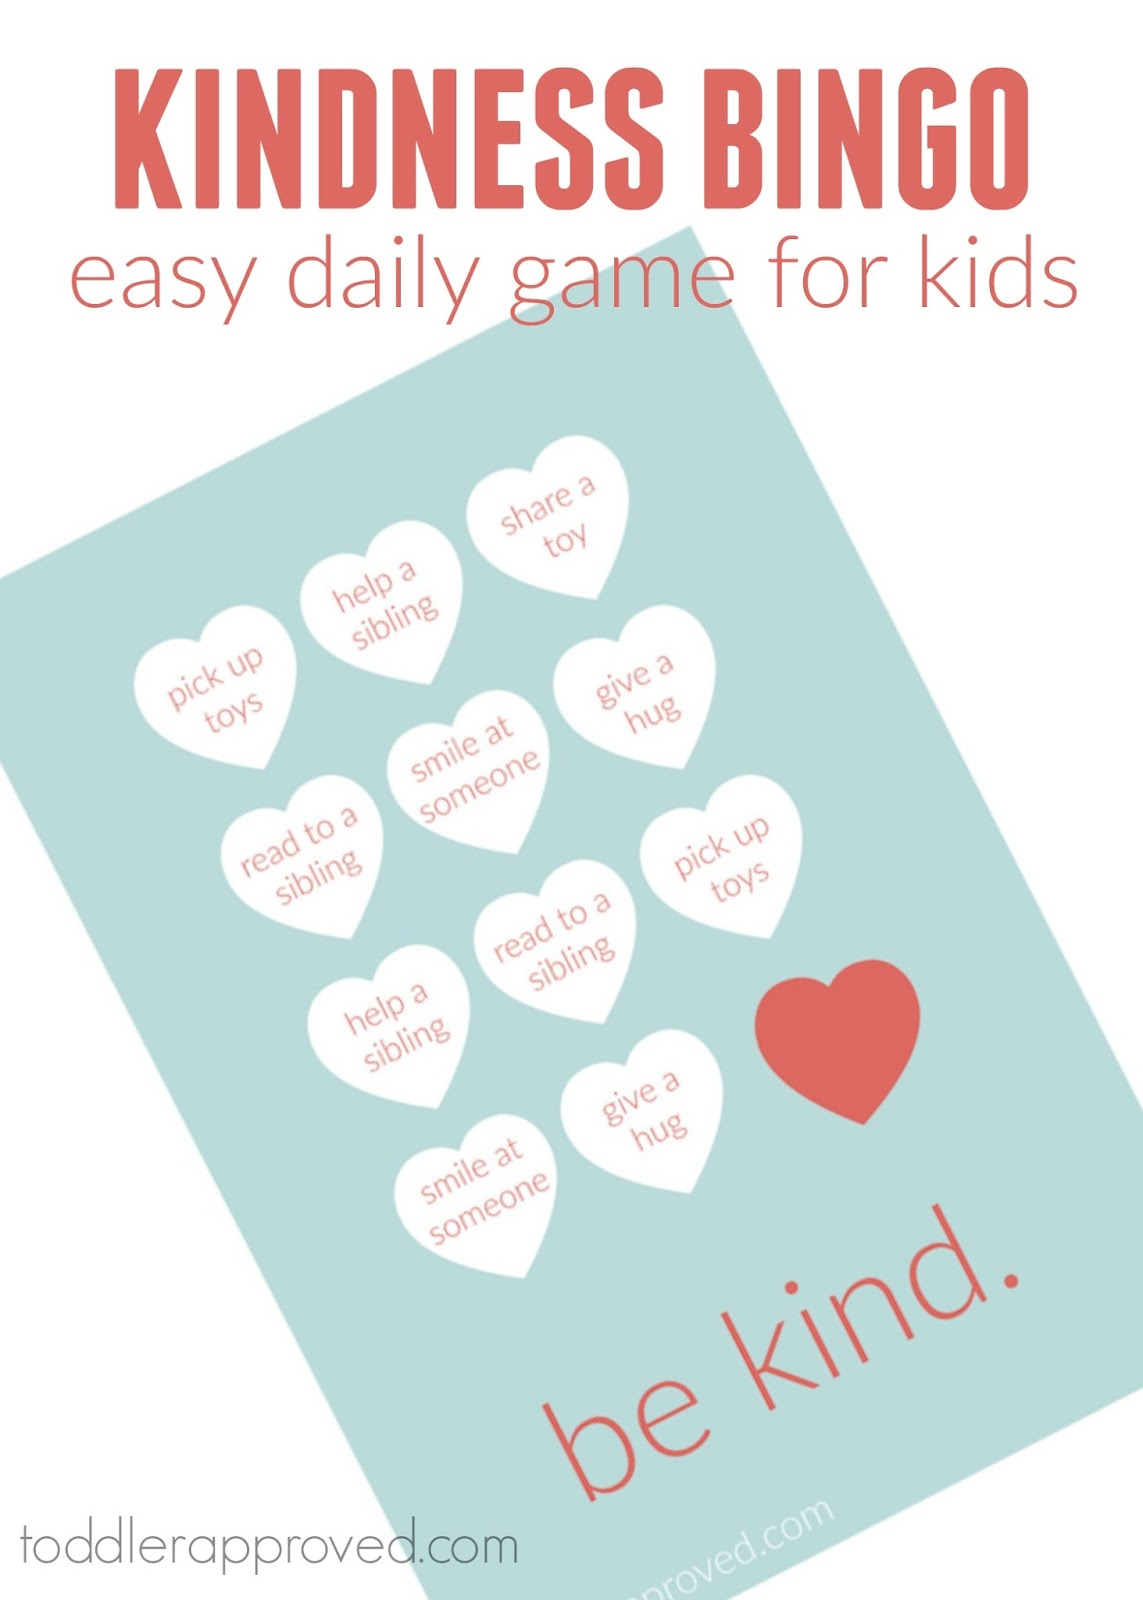 Toddler Approved!: Quick Daily Kindness BINGO Game for Kids